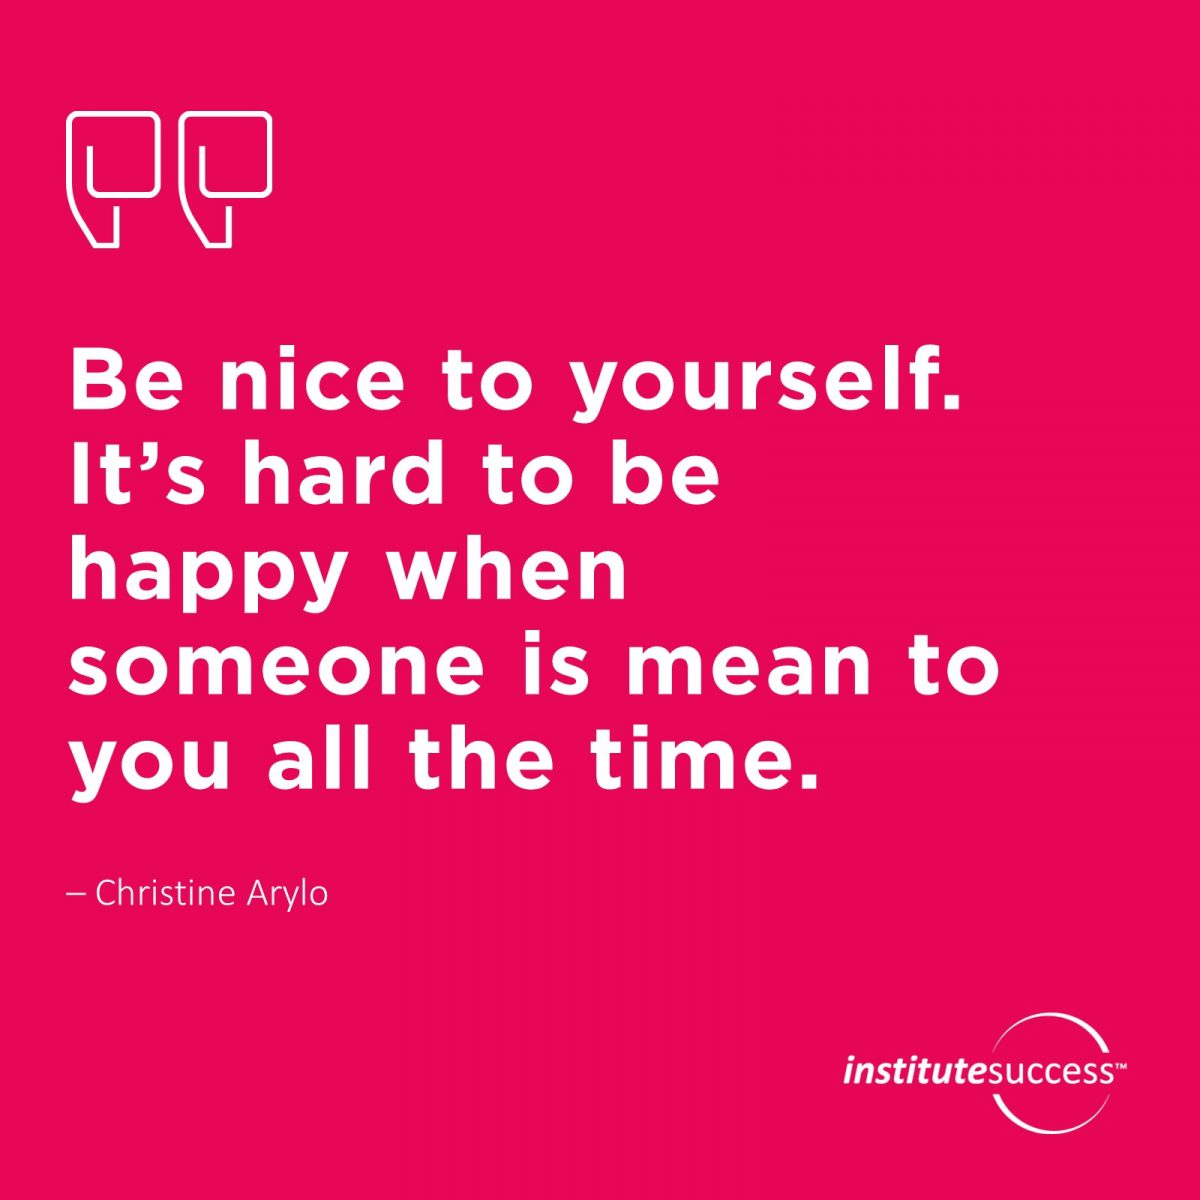 Be nice to yourself. It's hard to be happy when someone is mean to you all the time. 	Christine Arylo